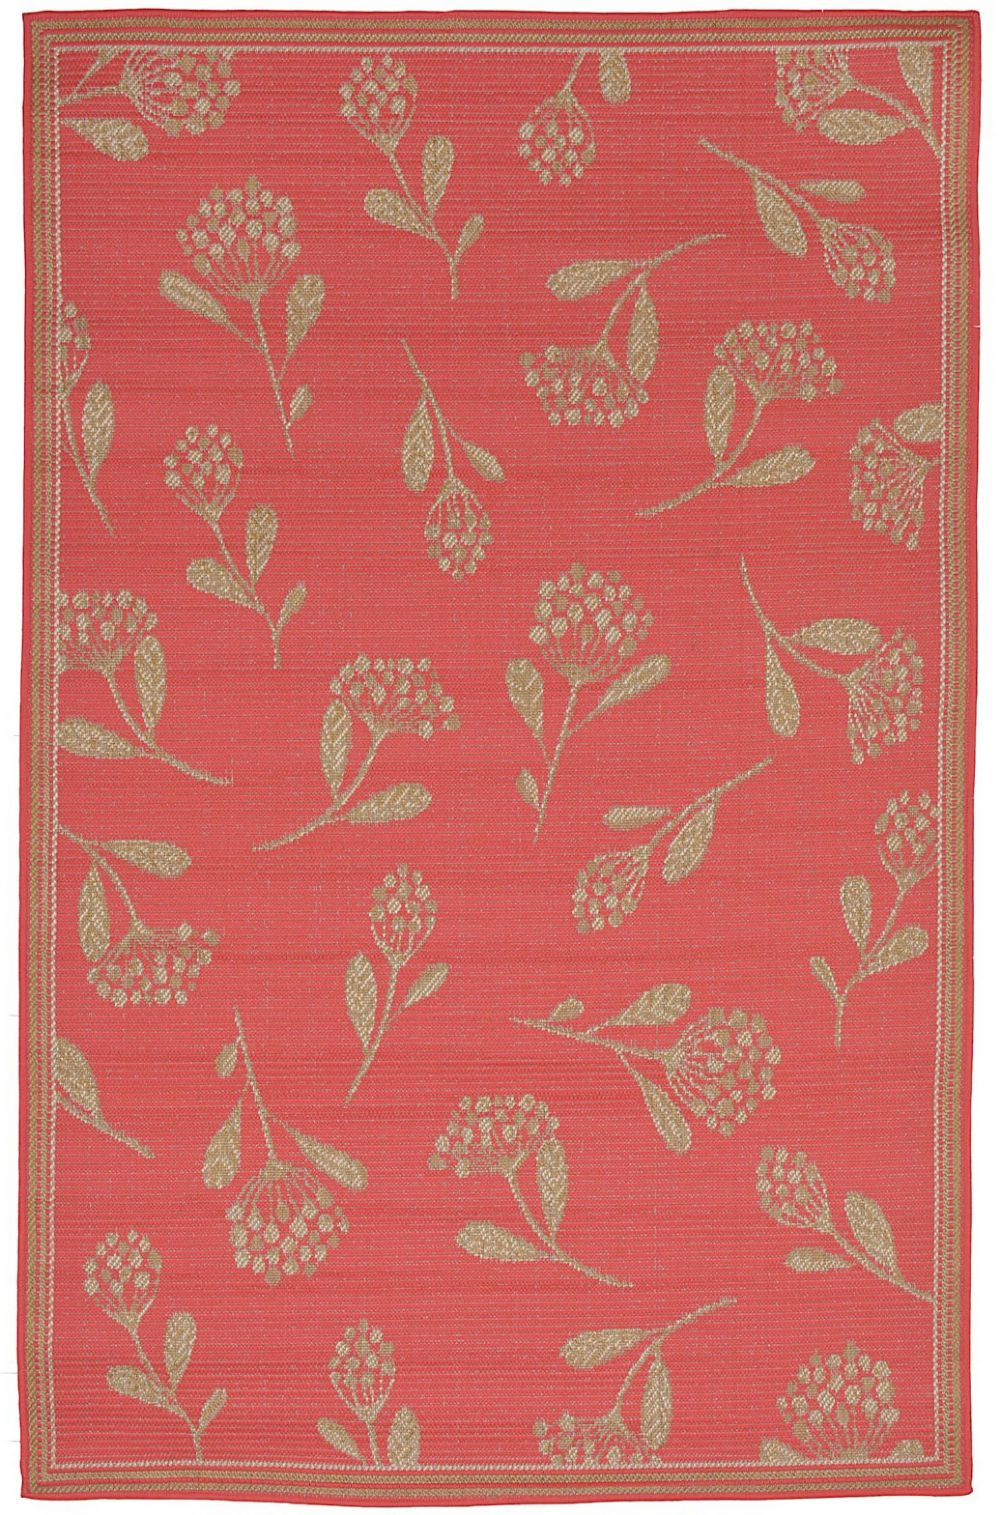 trans ocean terrace country & floral area rug collection